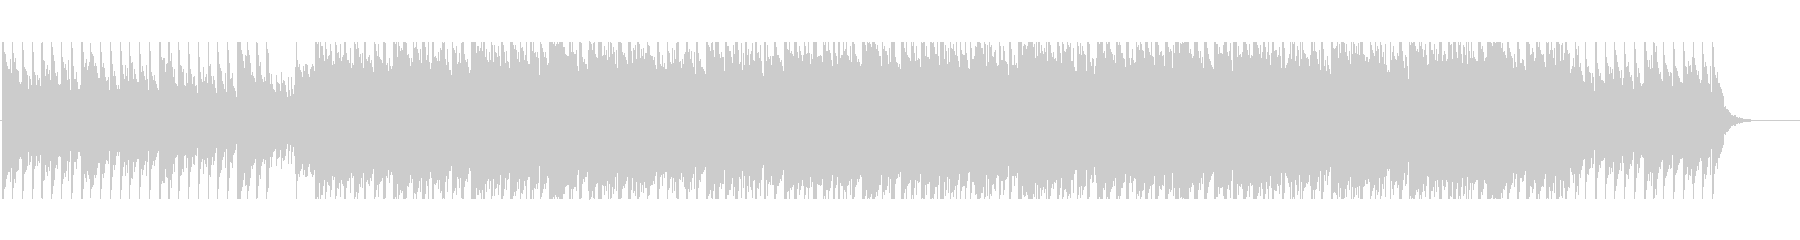 Positive and refreshing piano company VP ④'s unreproduced waveform